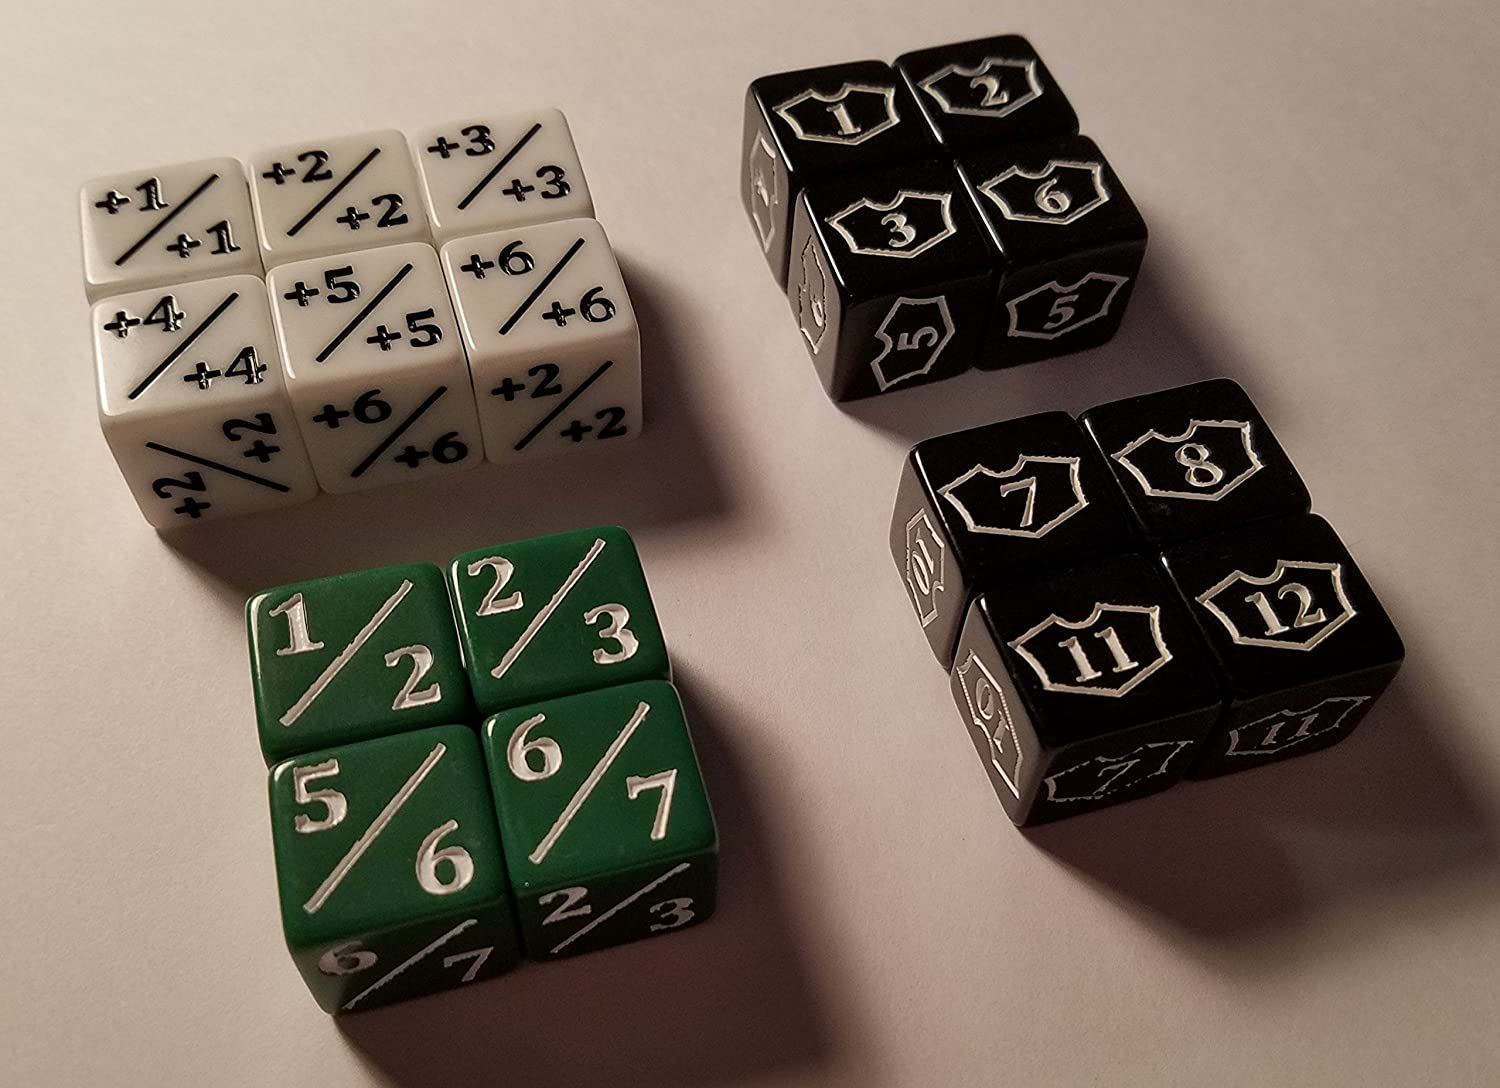 18x Counter Tarmogoyf Loyalty Max 50% OFF Dice for a Max 69% OFF Magic: The Gathering